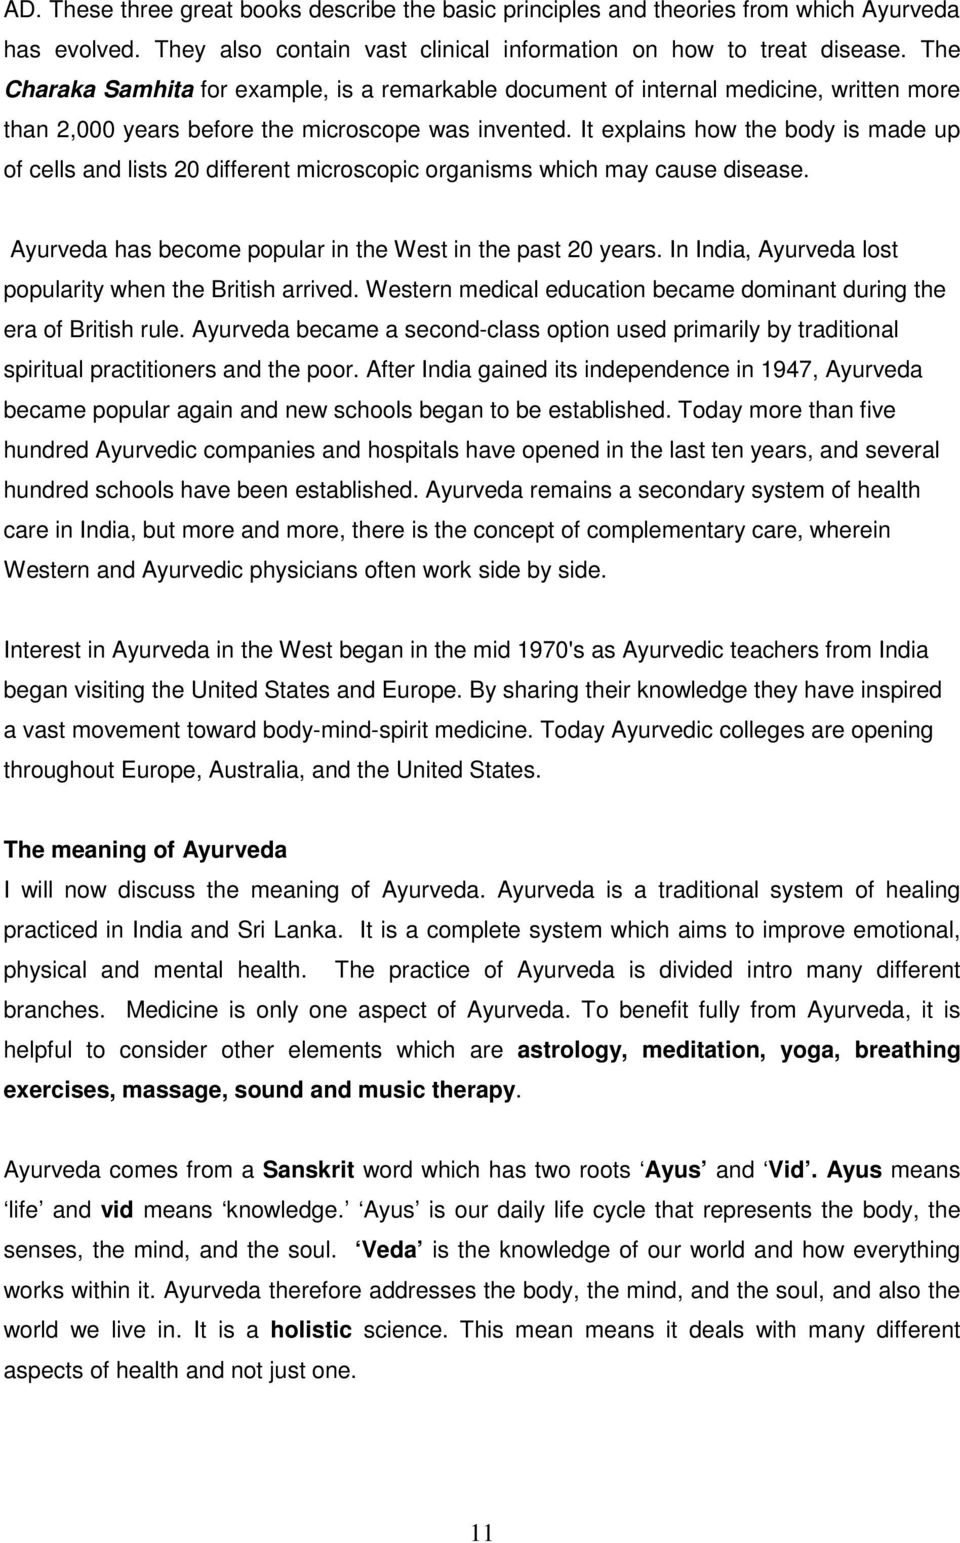 It explains how the body is made up of cells and lists 20 different microscopic organisms which may cause disease. Ayurveda has become popular in the West in the past 20 years.